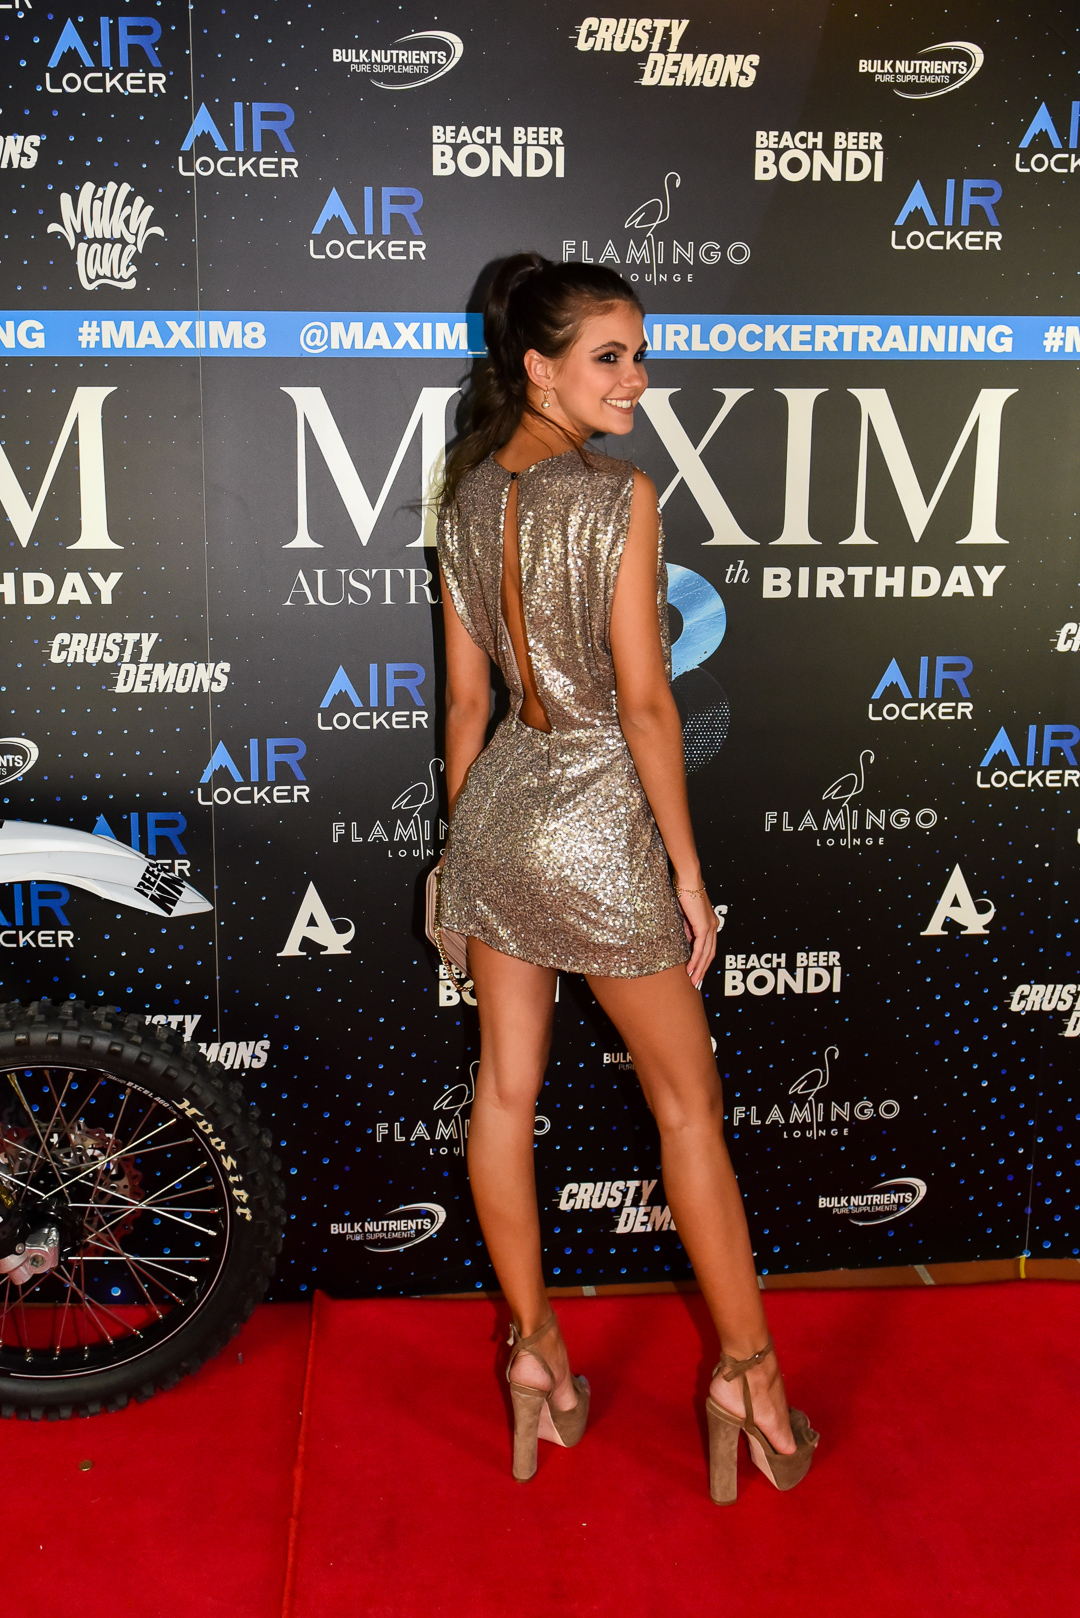 MAXIM_Australia_8th Birthday_14